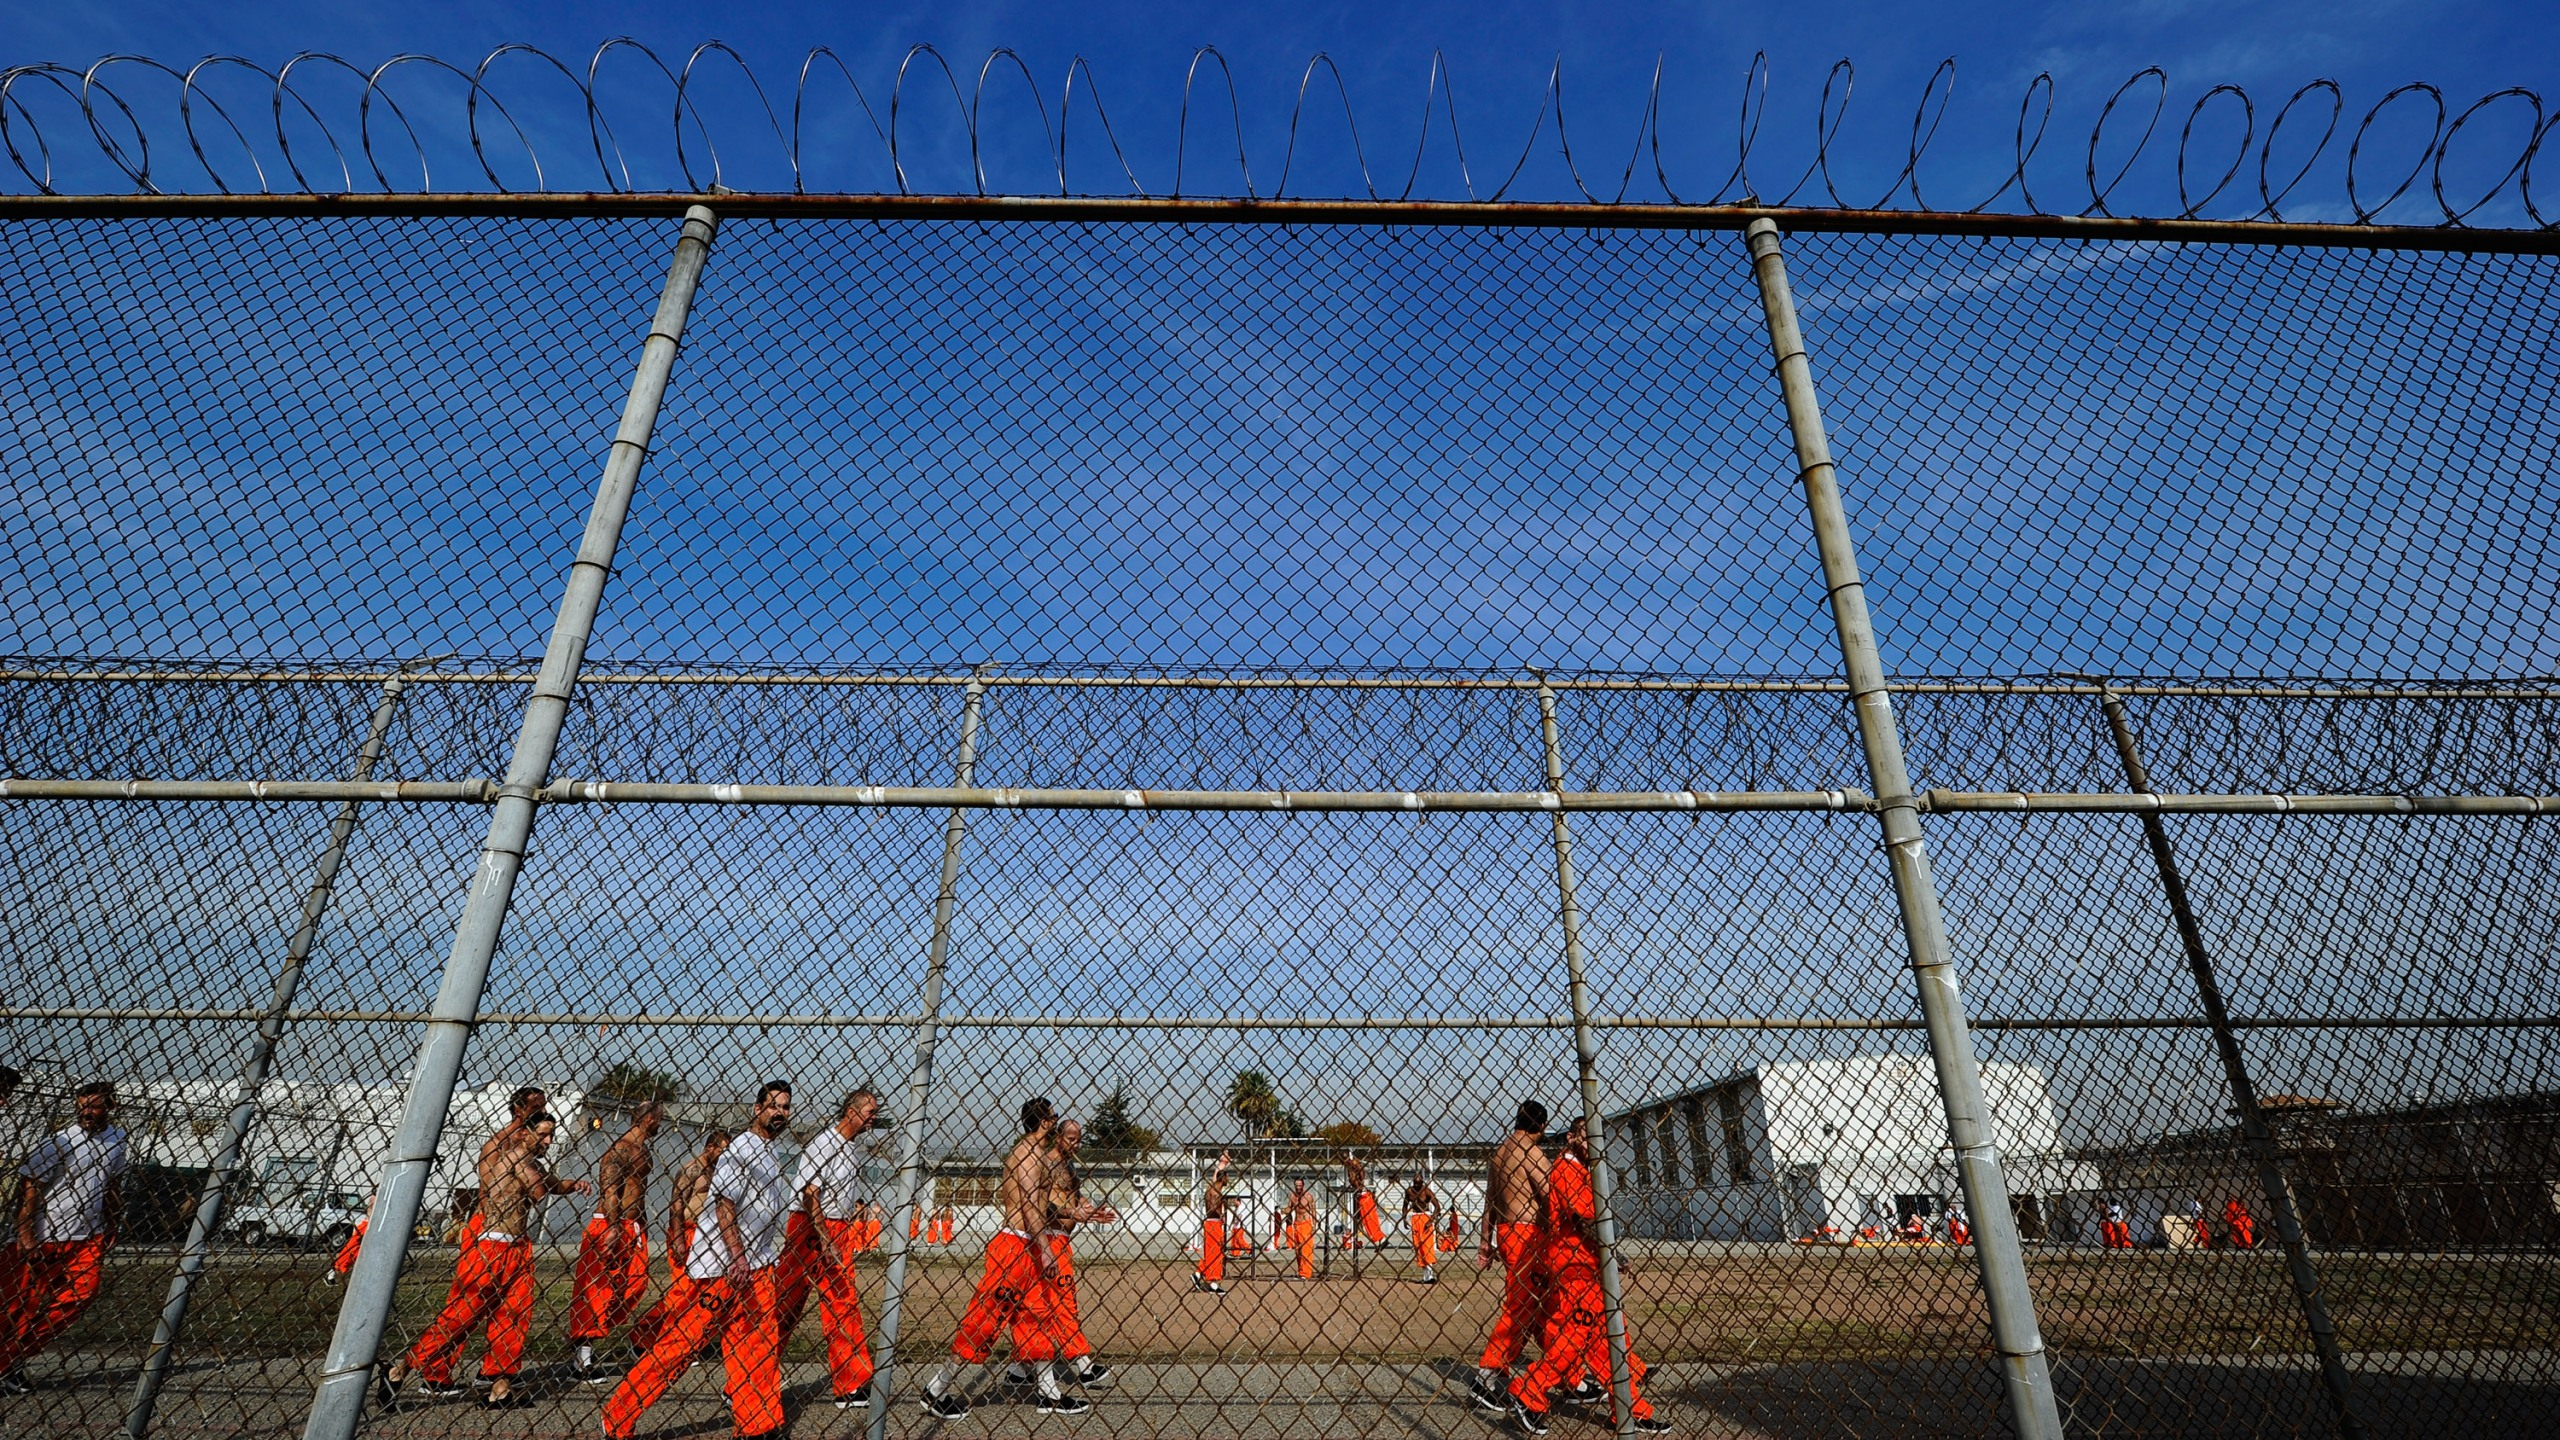 Inmates at Chino State Prison exercise in the yard Dec. 10, 2010, in Chino, Calif. (Credit: Kevork Djansezian/Getty Images)